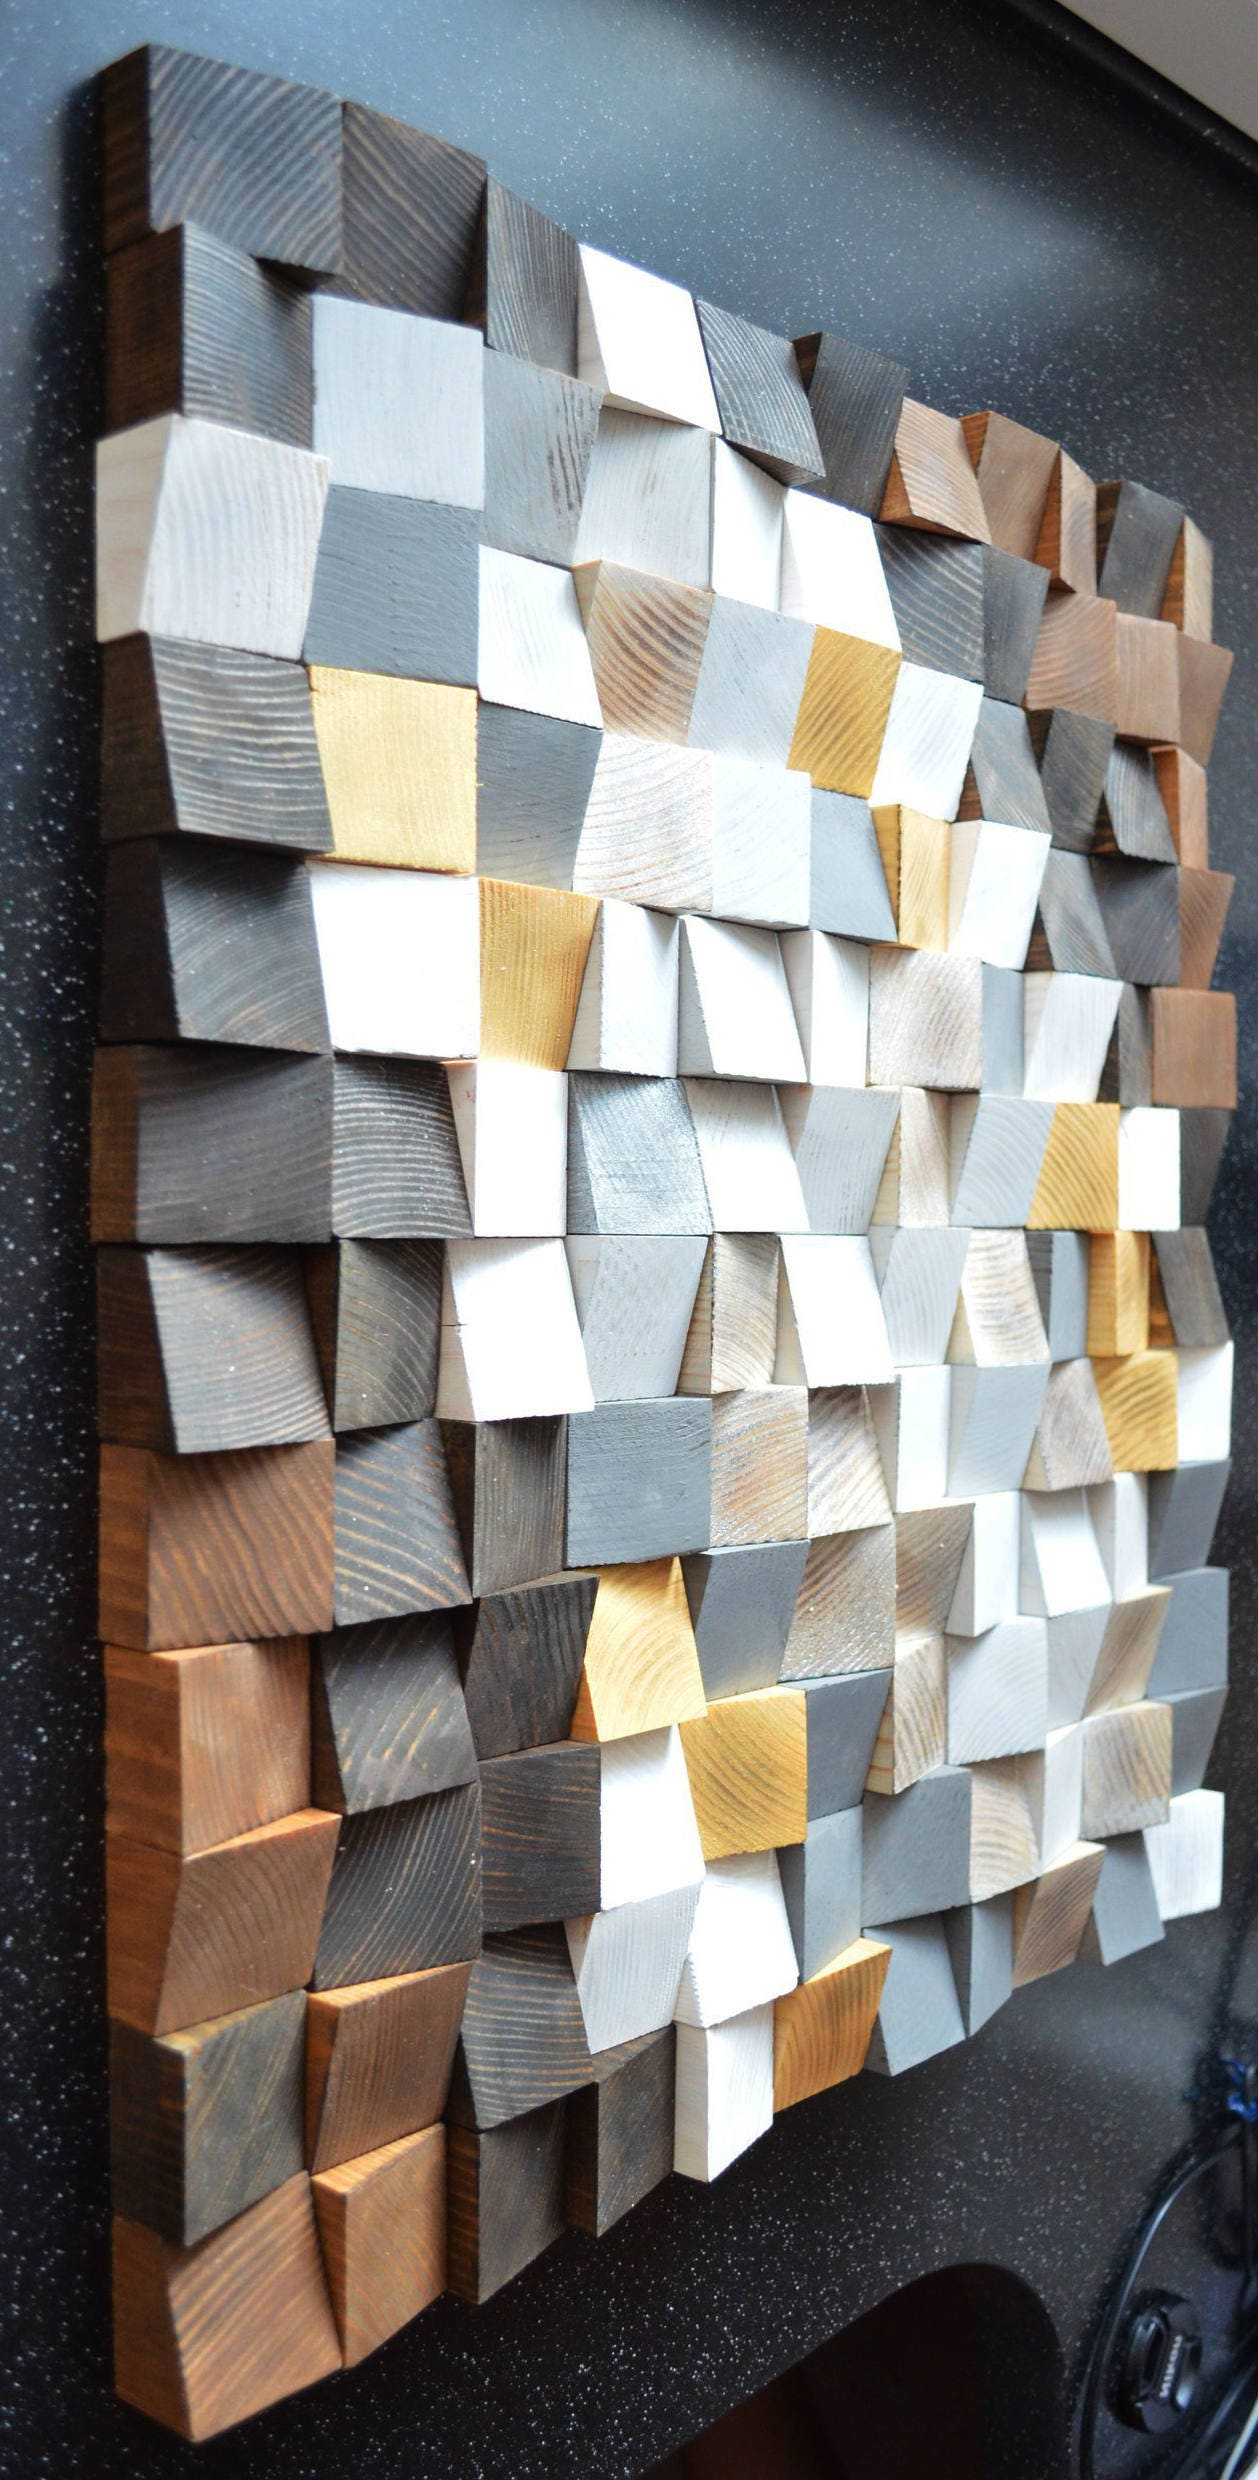 3d Wall Art For Contemporary Homes: Geometric Wood Art Wood Art 3D Wall Art Abstract Painting